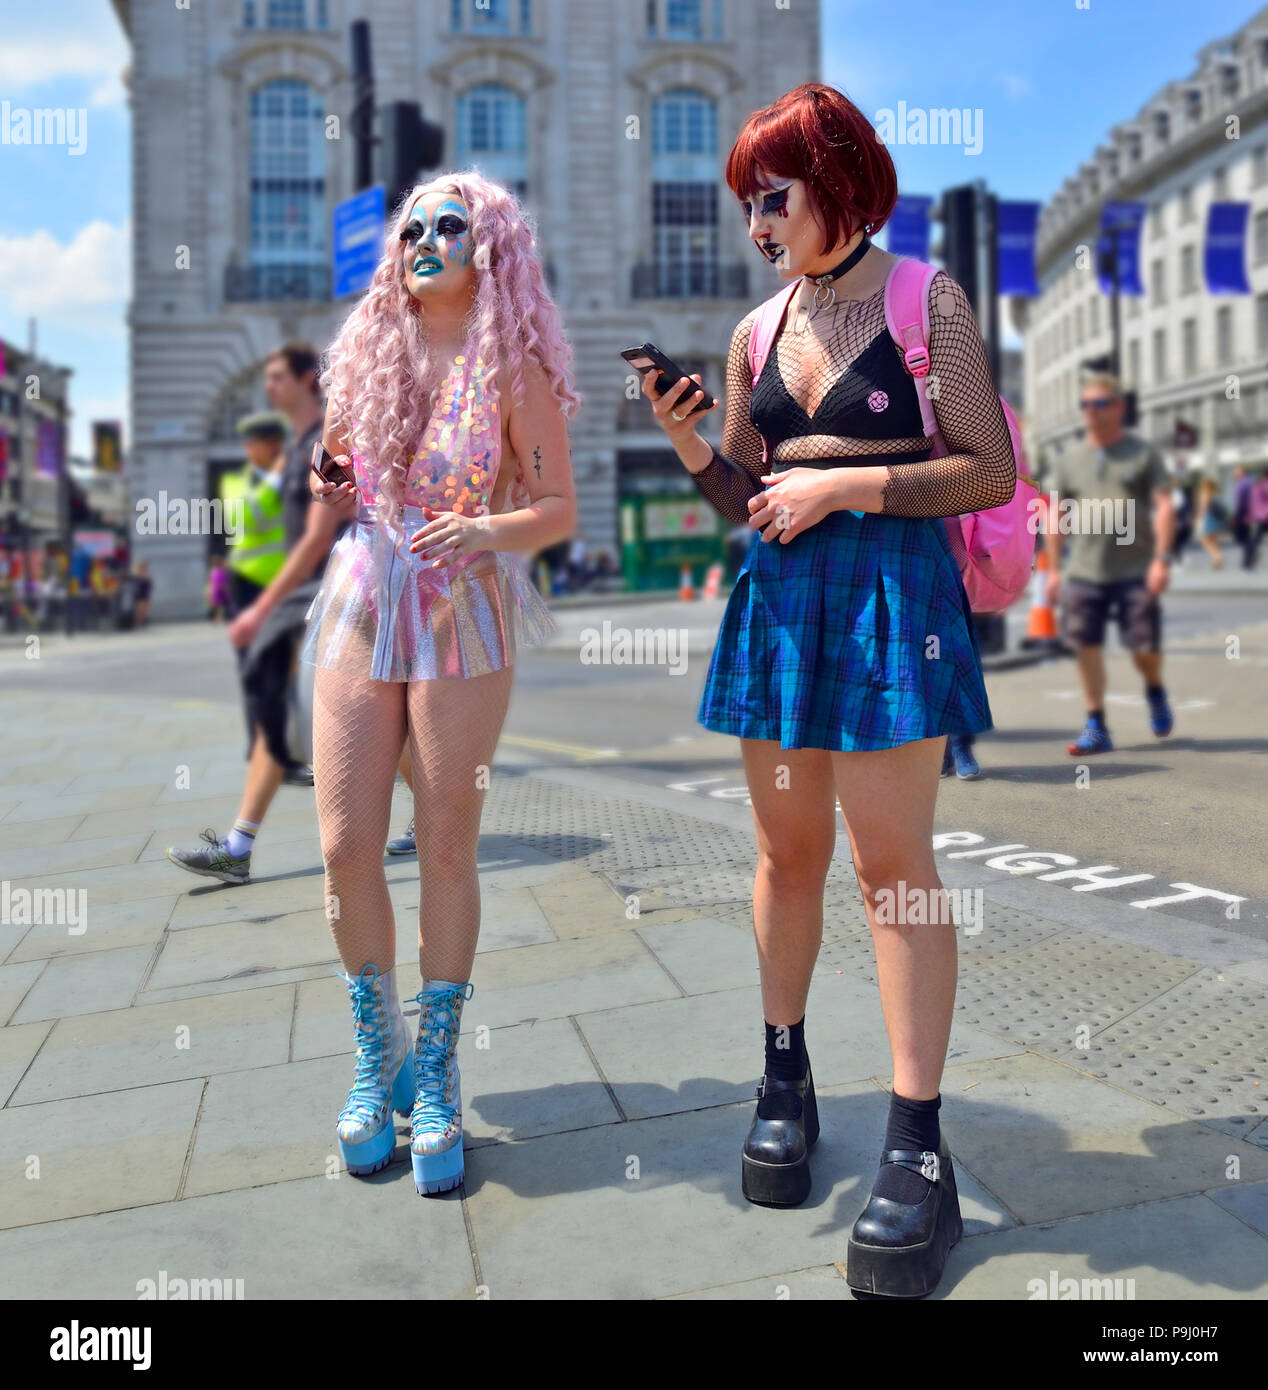 Two heavily-made up and interestingly-dressed girls in Piccadilly Circus, London, England, UK. Heading for an Anti-Trump march during the president's  - Stock Image